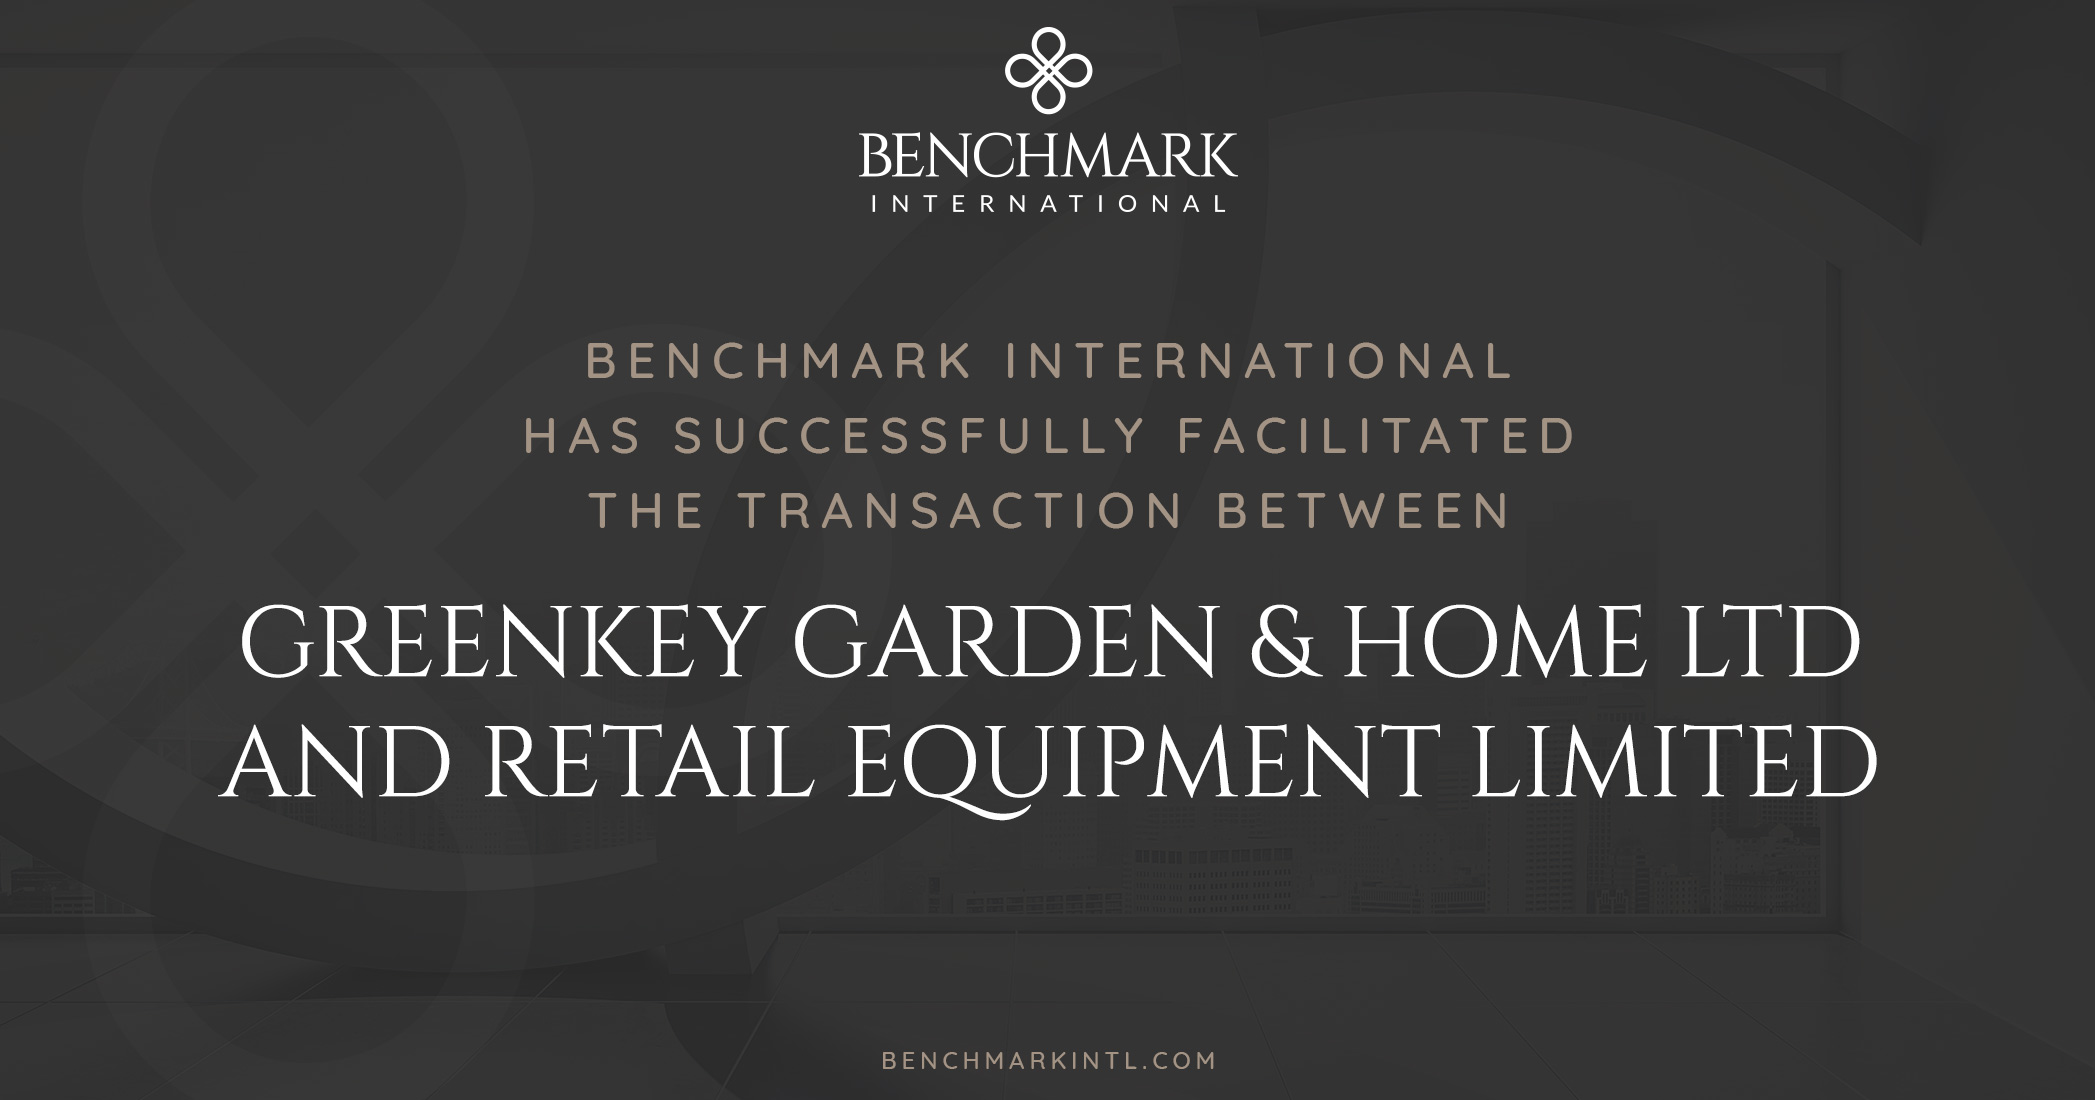 Benchmark International Successfully Facilitated the Transaction Between Greenkey Garden & Home Ltd and Retail Equipment Limited